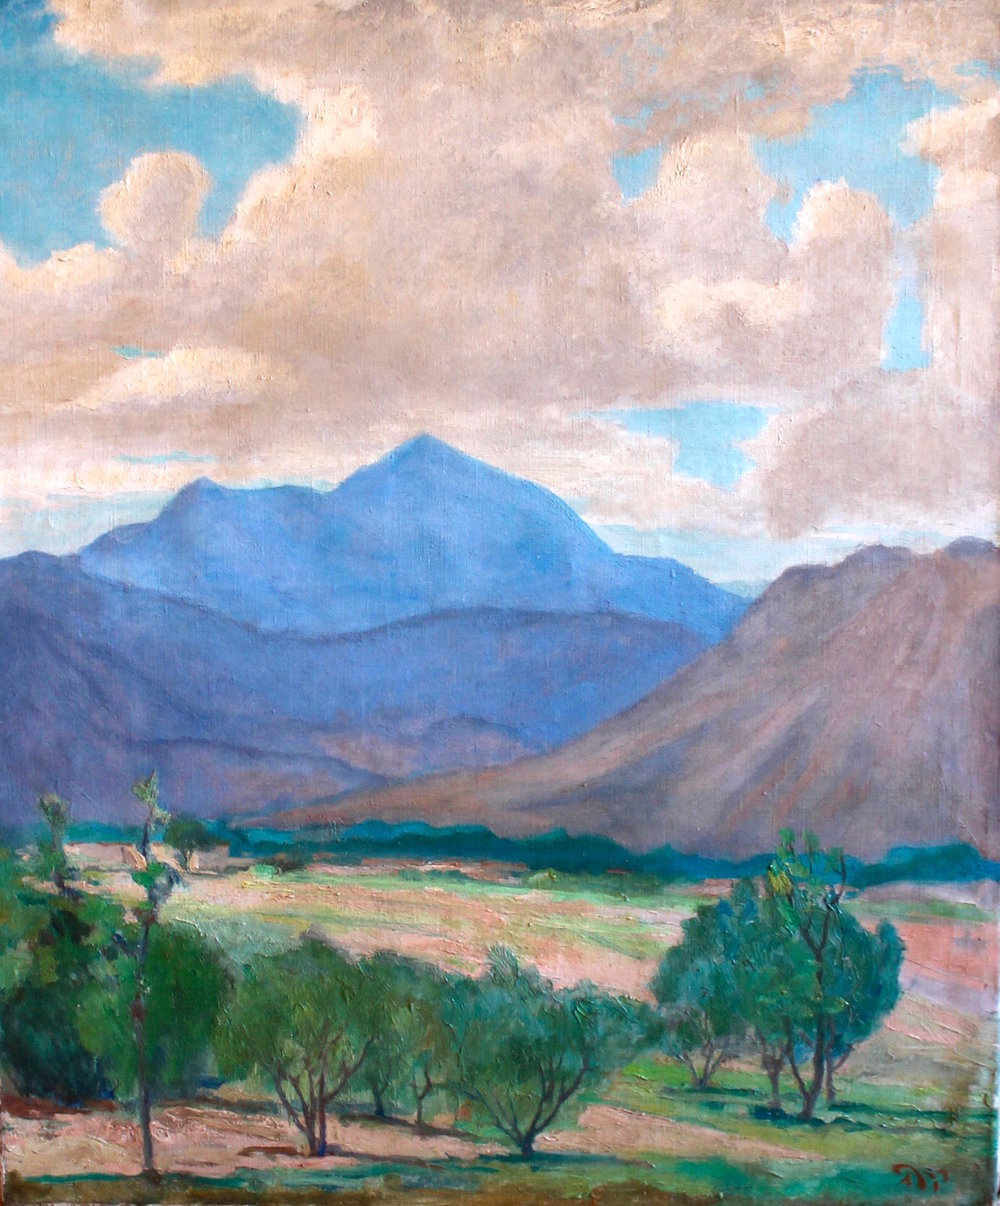 """Western Landscape"", Oil on canvas, 28 3/8 x 23 3/8 in."